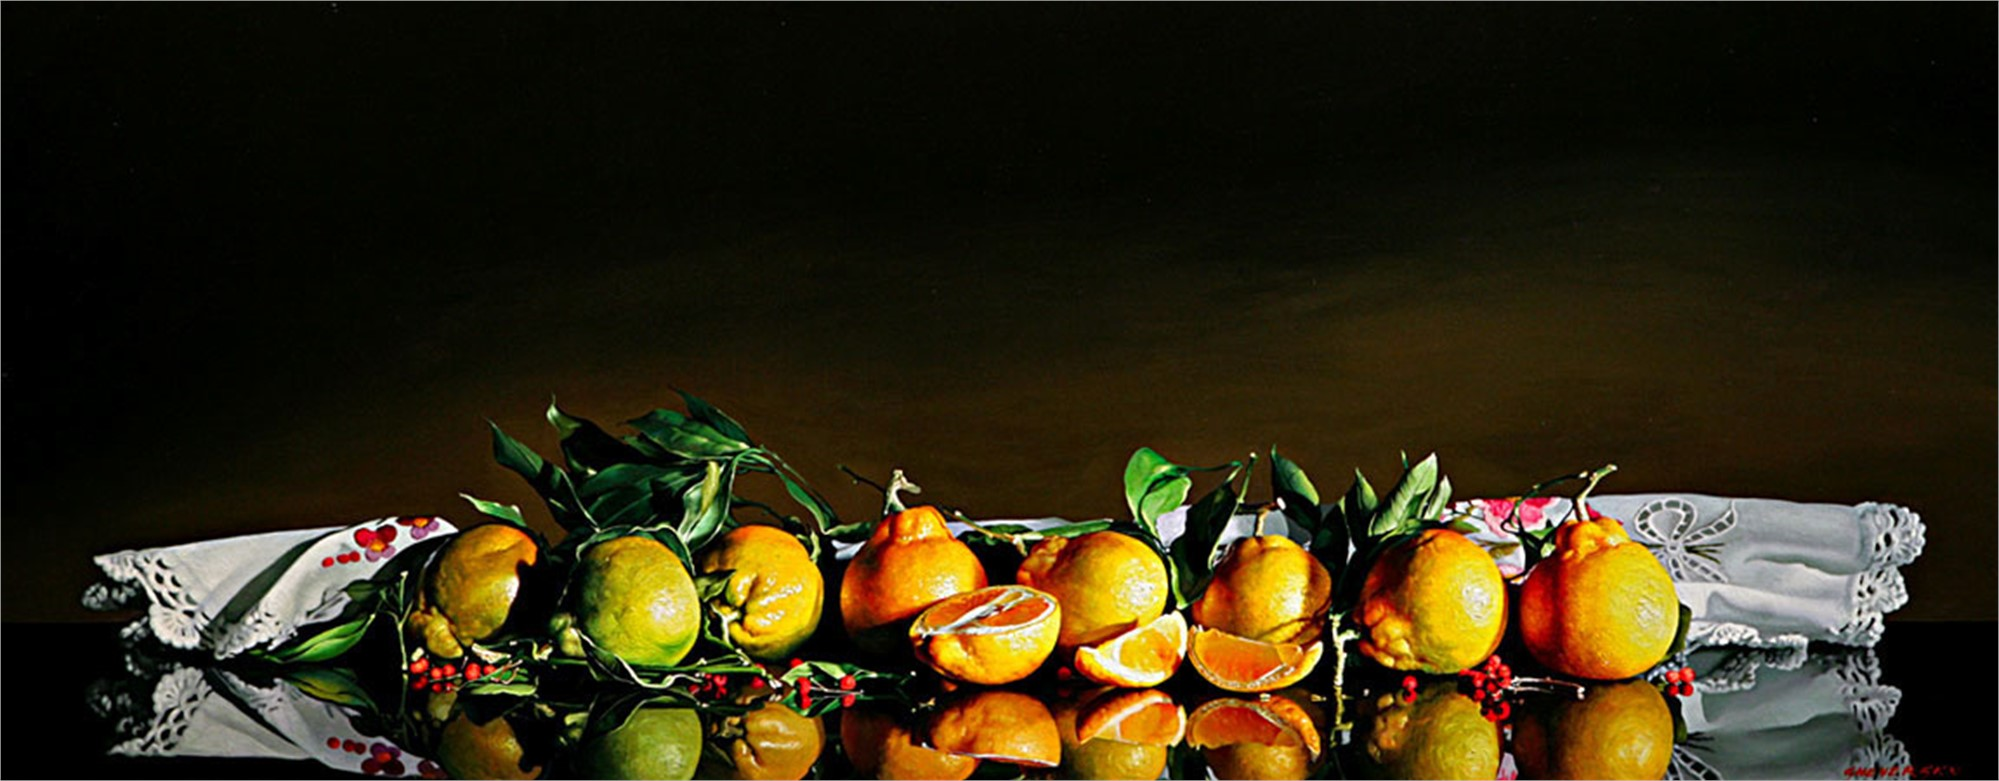 Still Life with Eight Mandarins by Alexander Sheversky